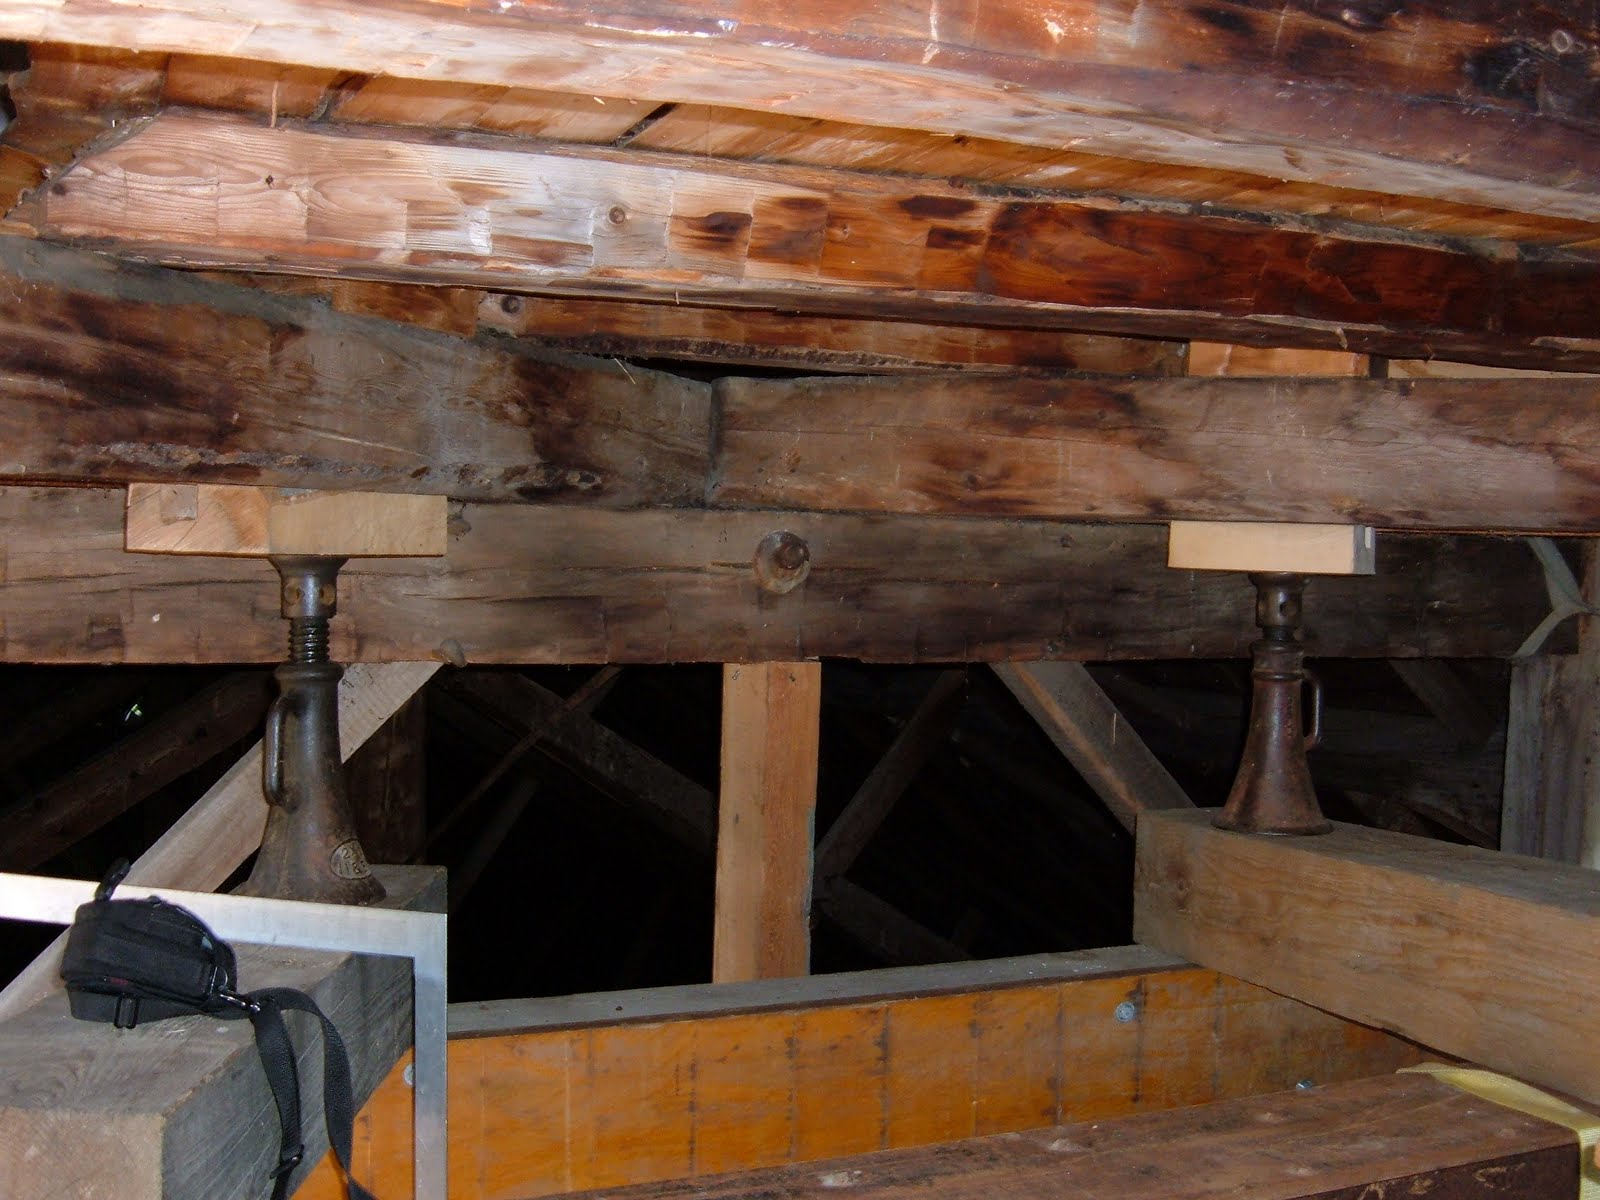 Jacks positioned directly under each of the eight posts transfered the load to the I beams.